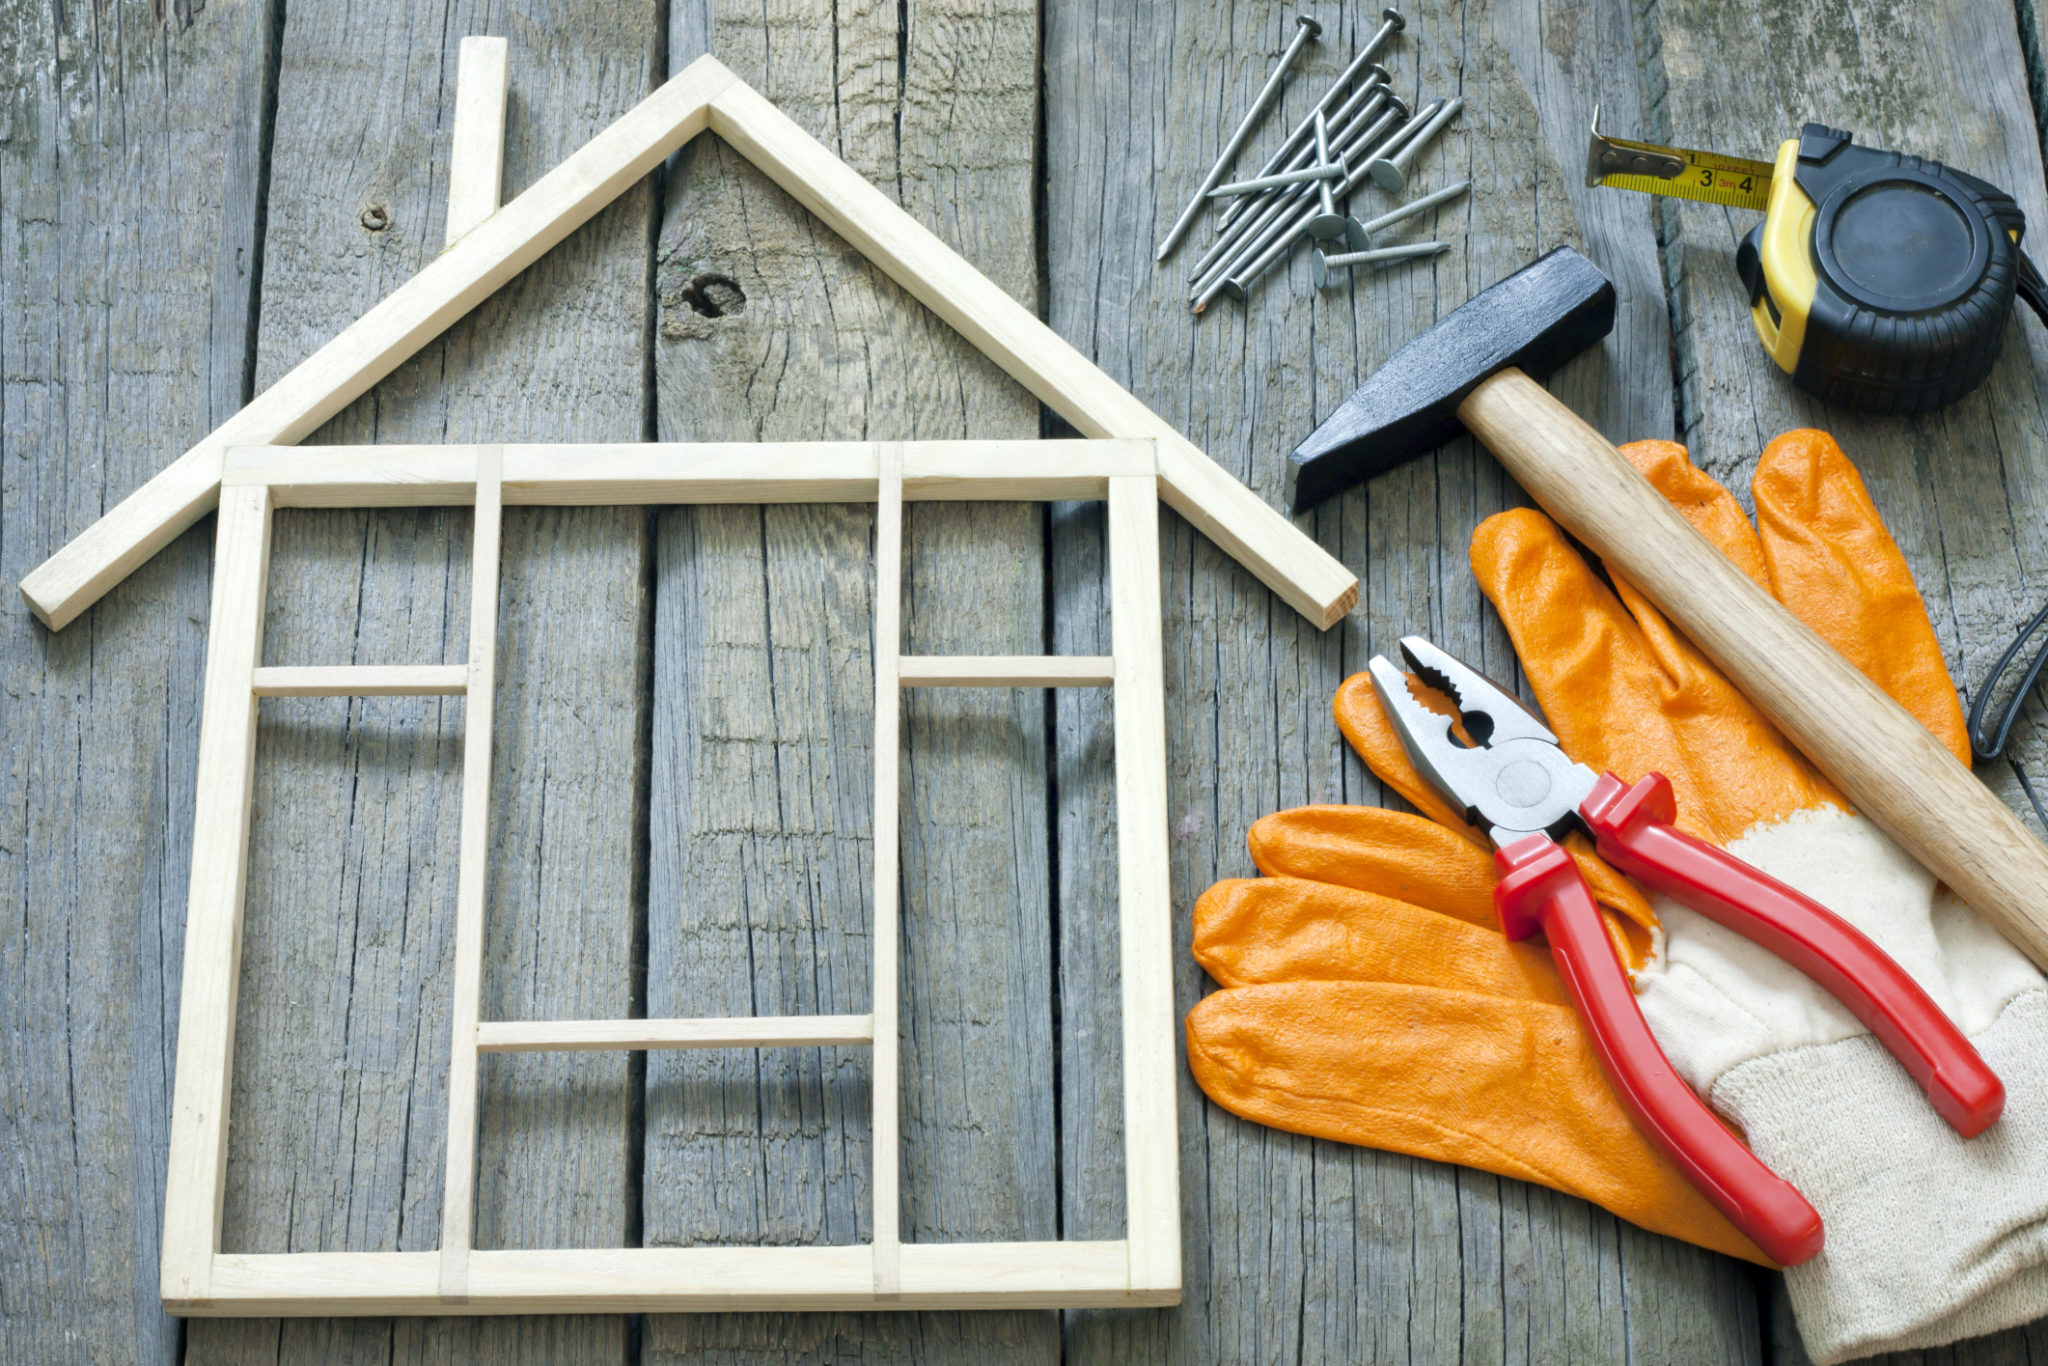 important things to check before purchasing a property to renovate